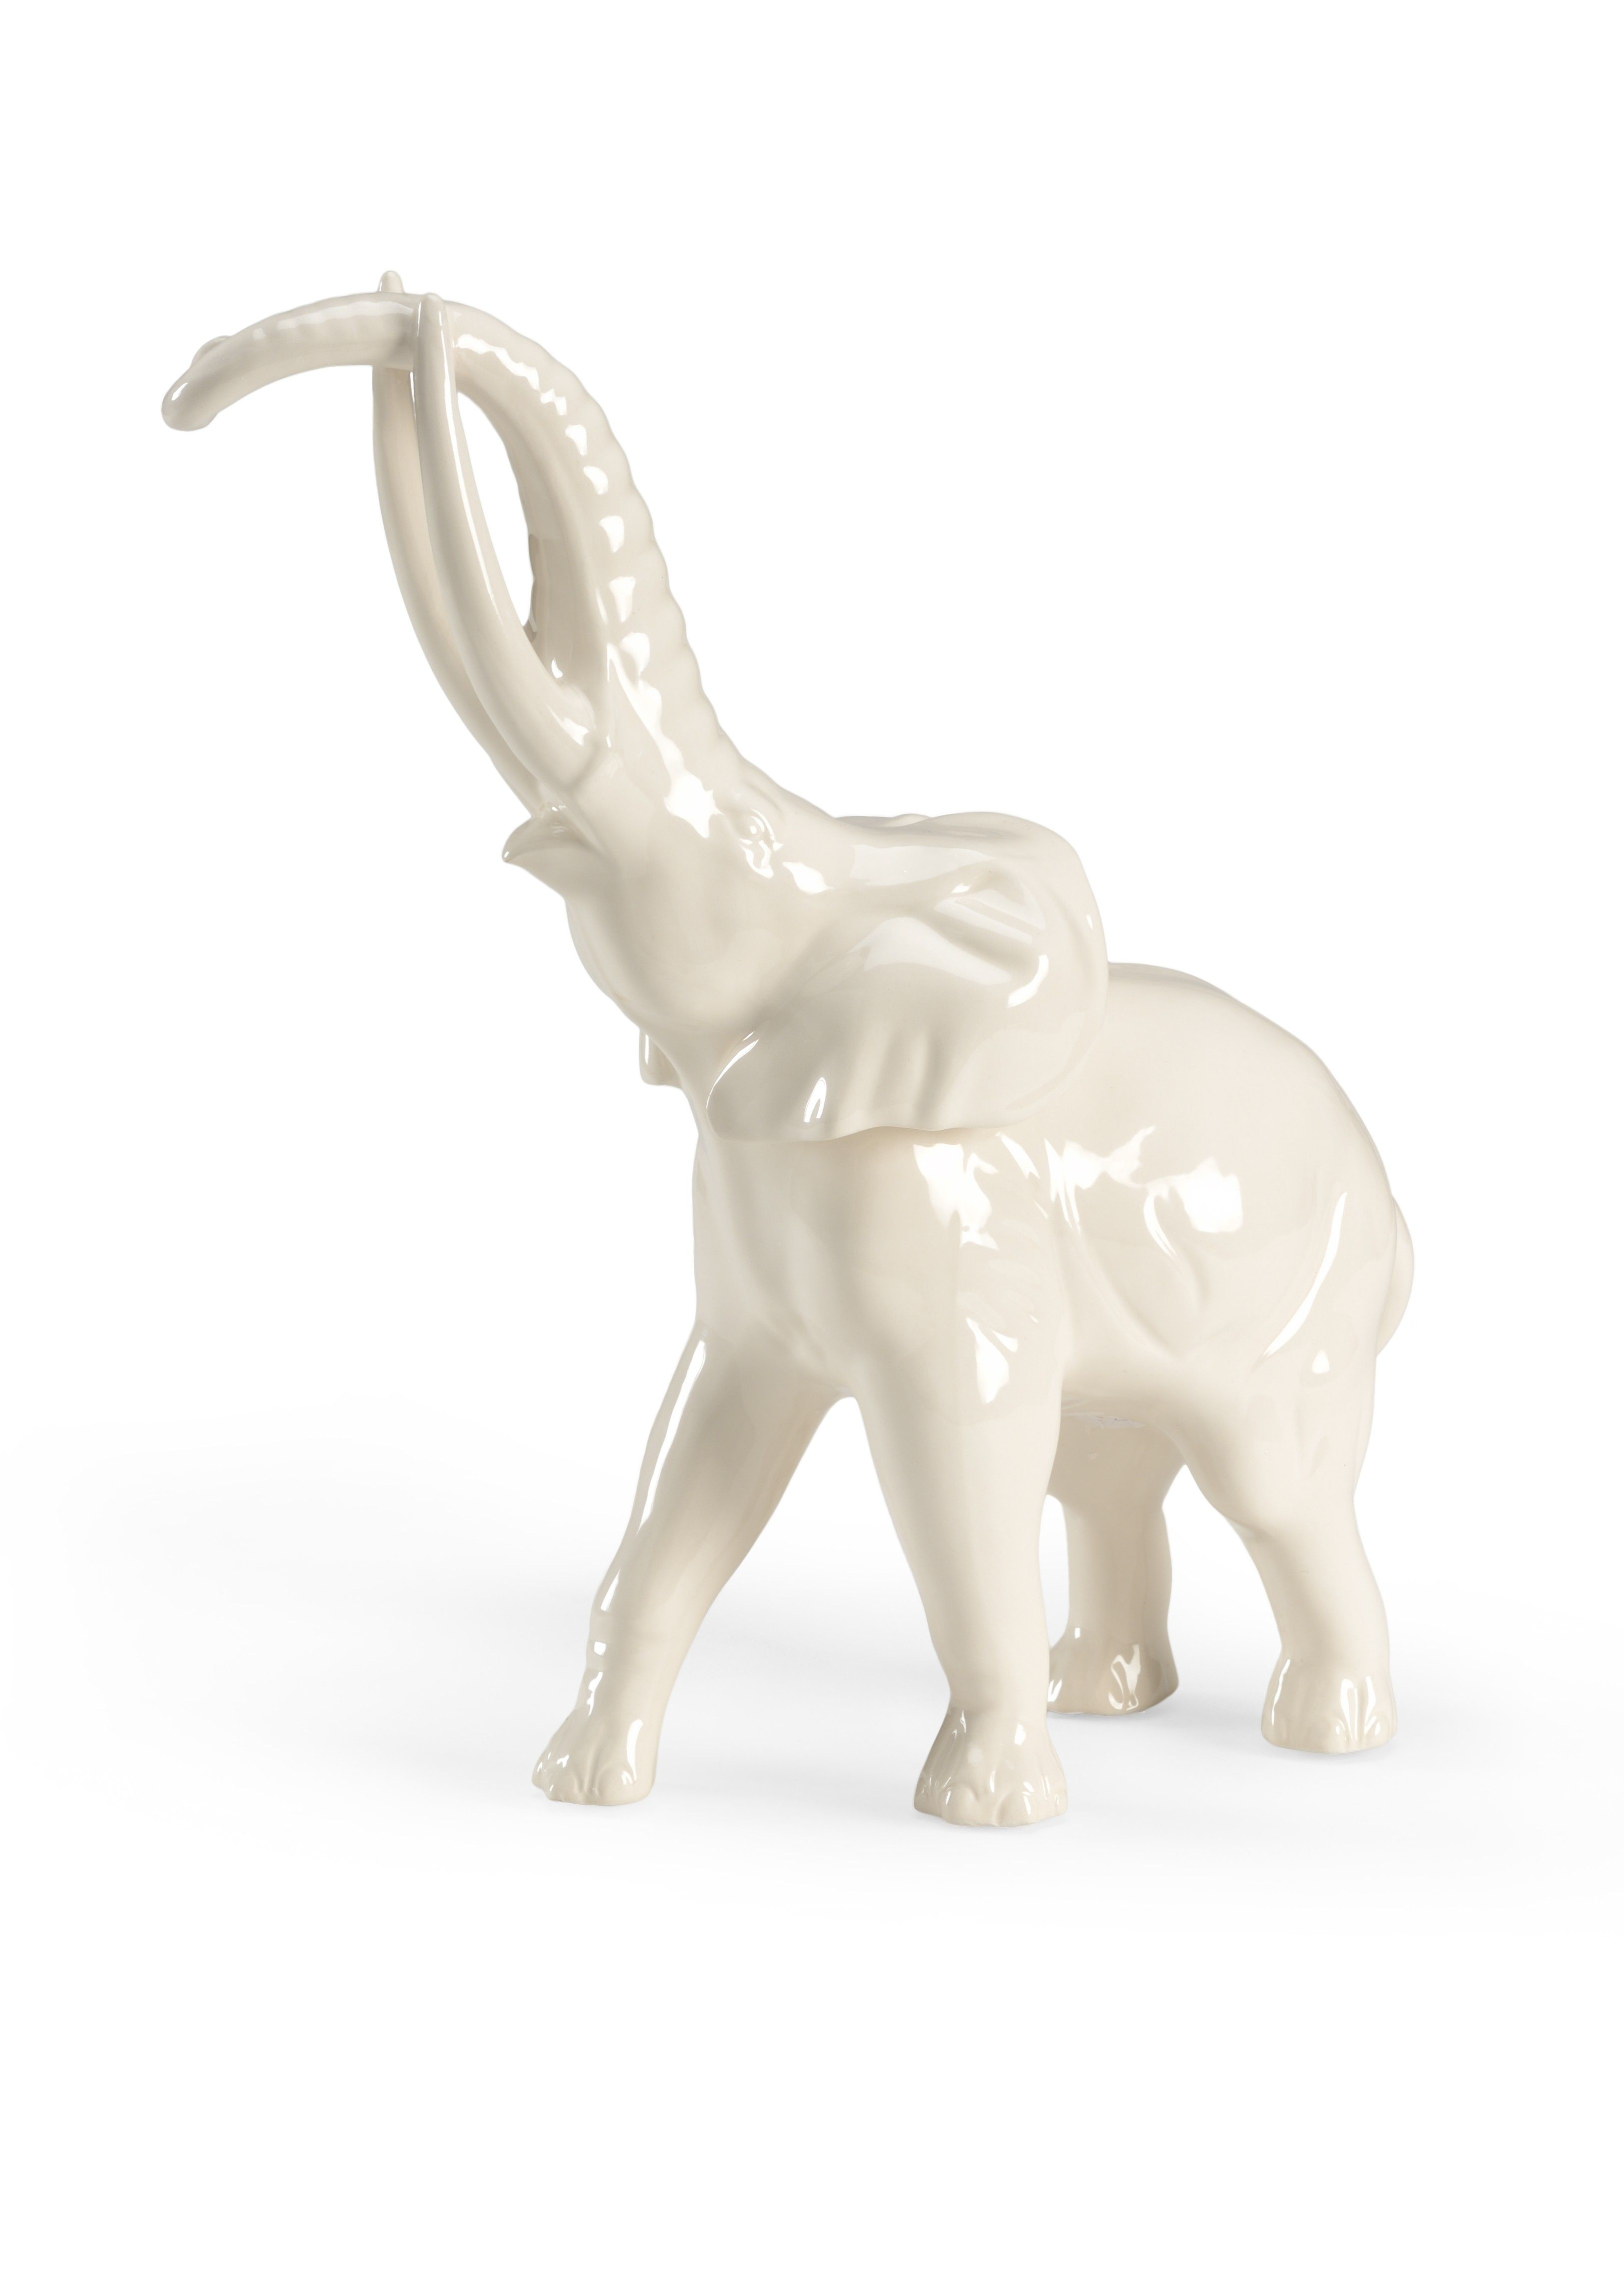 Captivating Ceramic White Elephant Statue ON BACKORDER UNTIL MARCH 2016